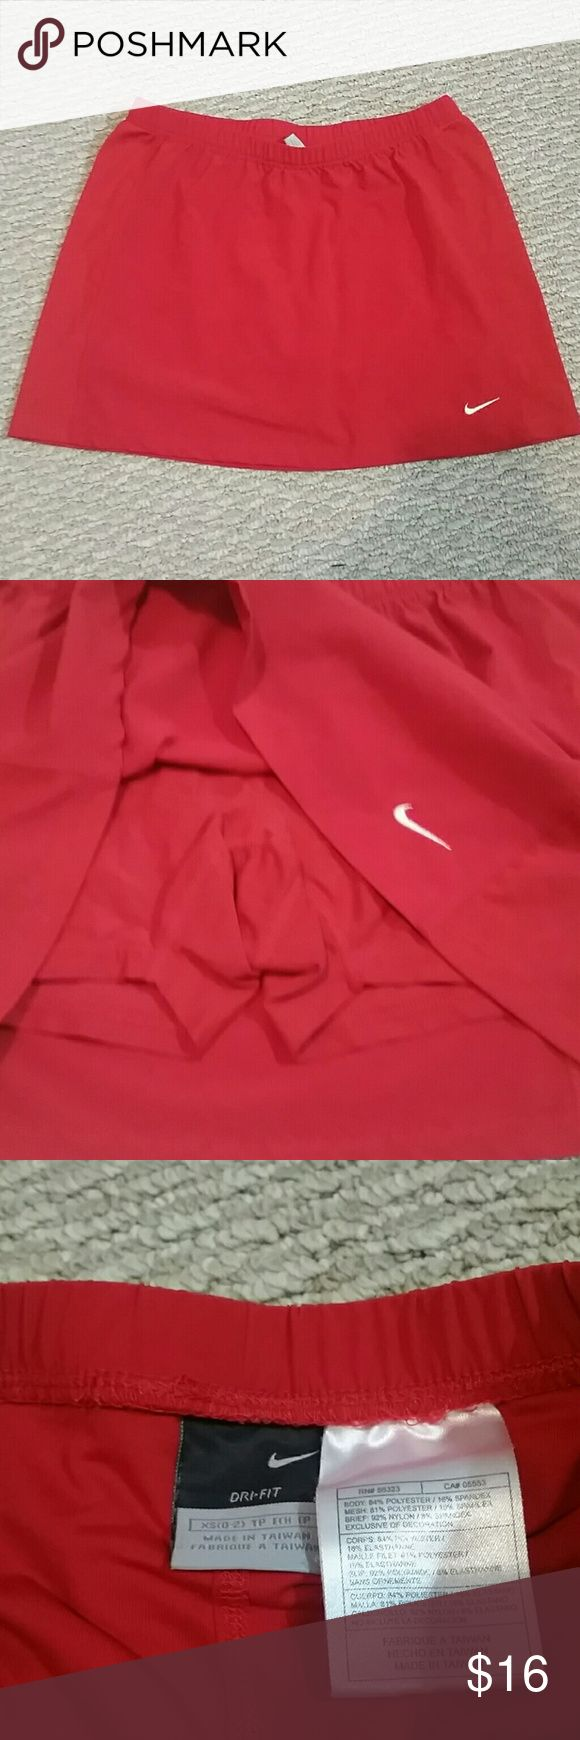 Nike red skort mesh size xs In excellent condition  No flaws  Mesh on the side and polyester  Size xs Nike skort tennis or badminton Nike Skirts Mini